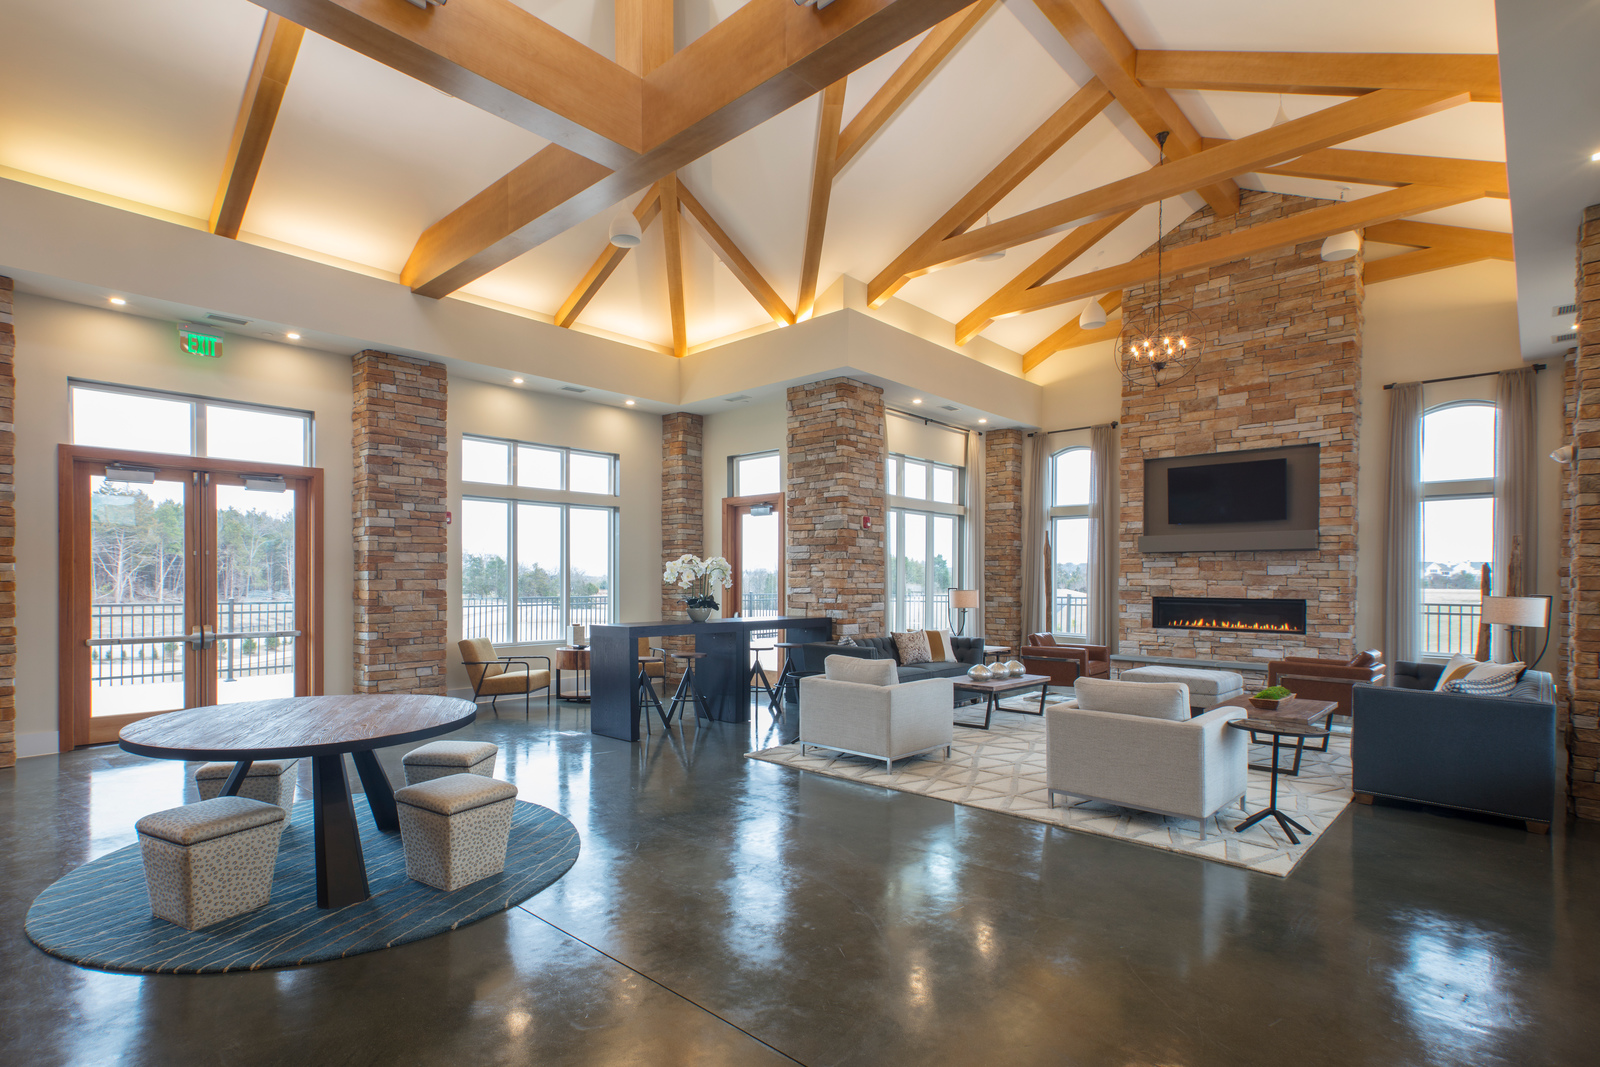 Westmoore is the winner of the 2018 Max Award of Excellence for Outstanding Clubhouse! Meet friends and neighbors for lasting memories.